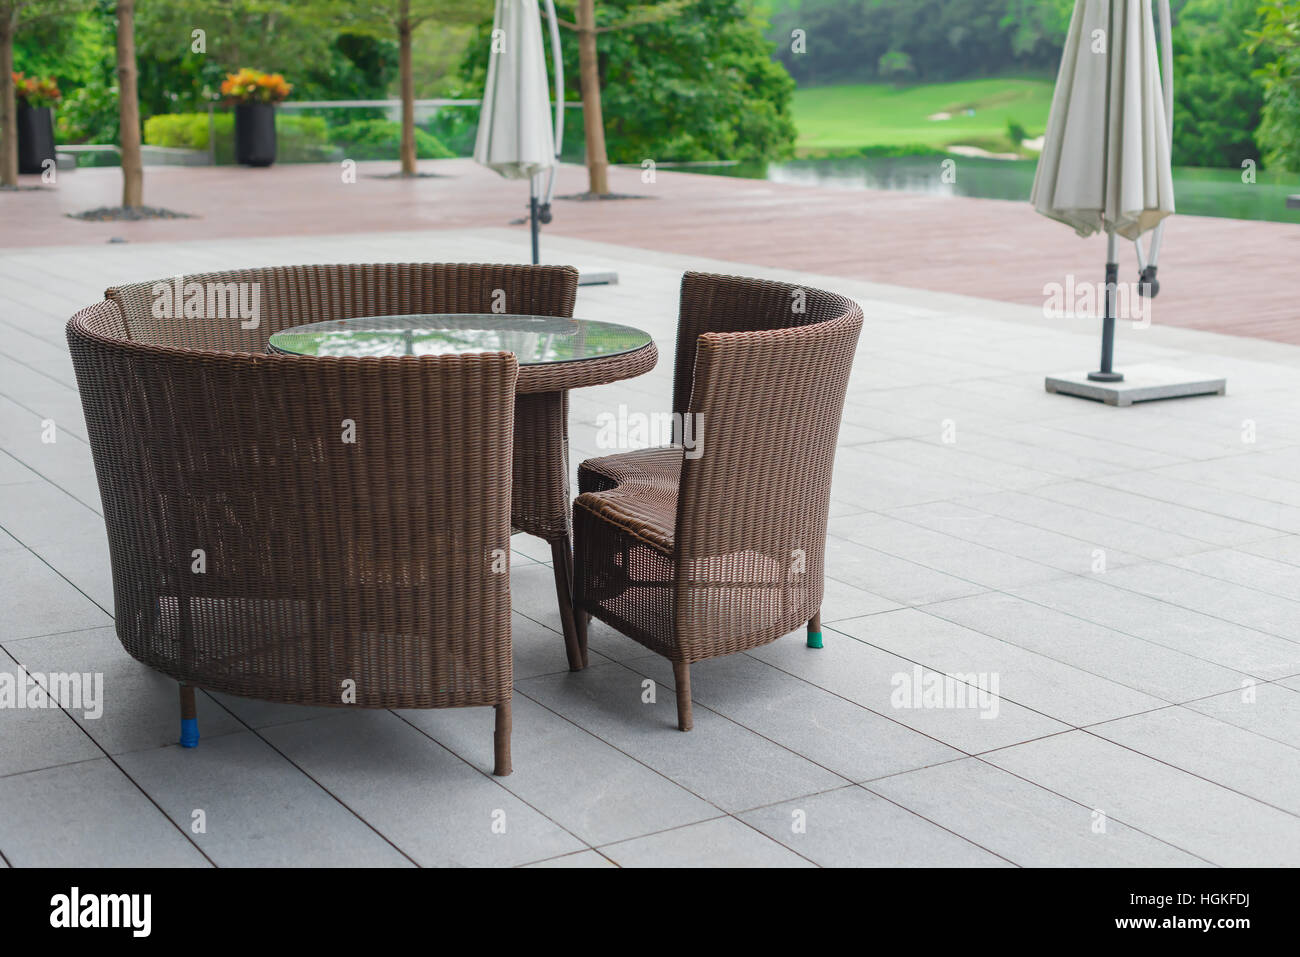 rattan sofa and table set in a garden Stock Photo